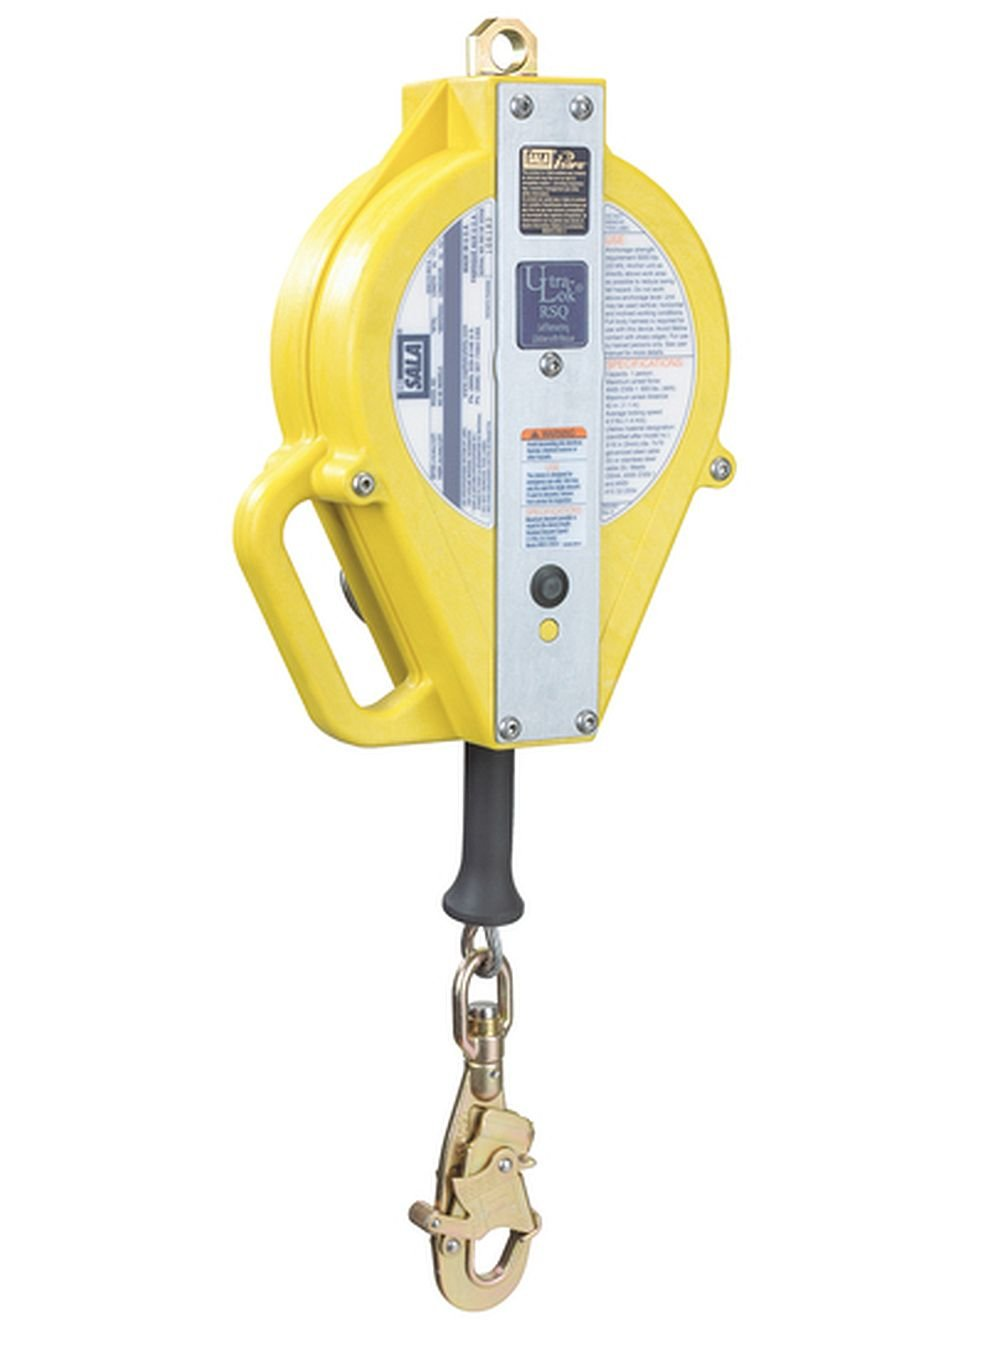 3M DBI-SALA Ultra-Lok 3504550 Self Retracting Lifeline, 50', 3/16'' Galvanized Steel Wire Rope, with Swivel Snap Hook, and Rsq Dual-Mode, Yellow